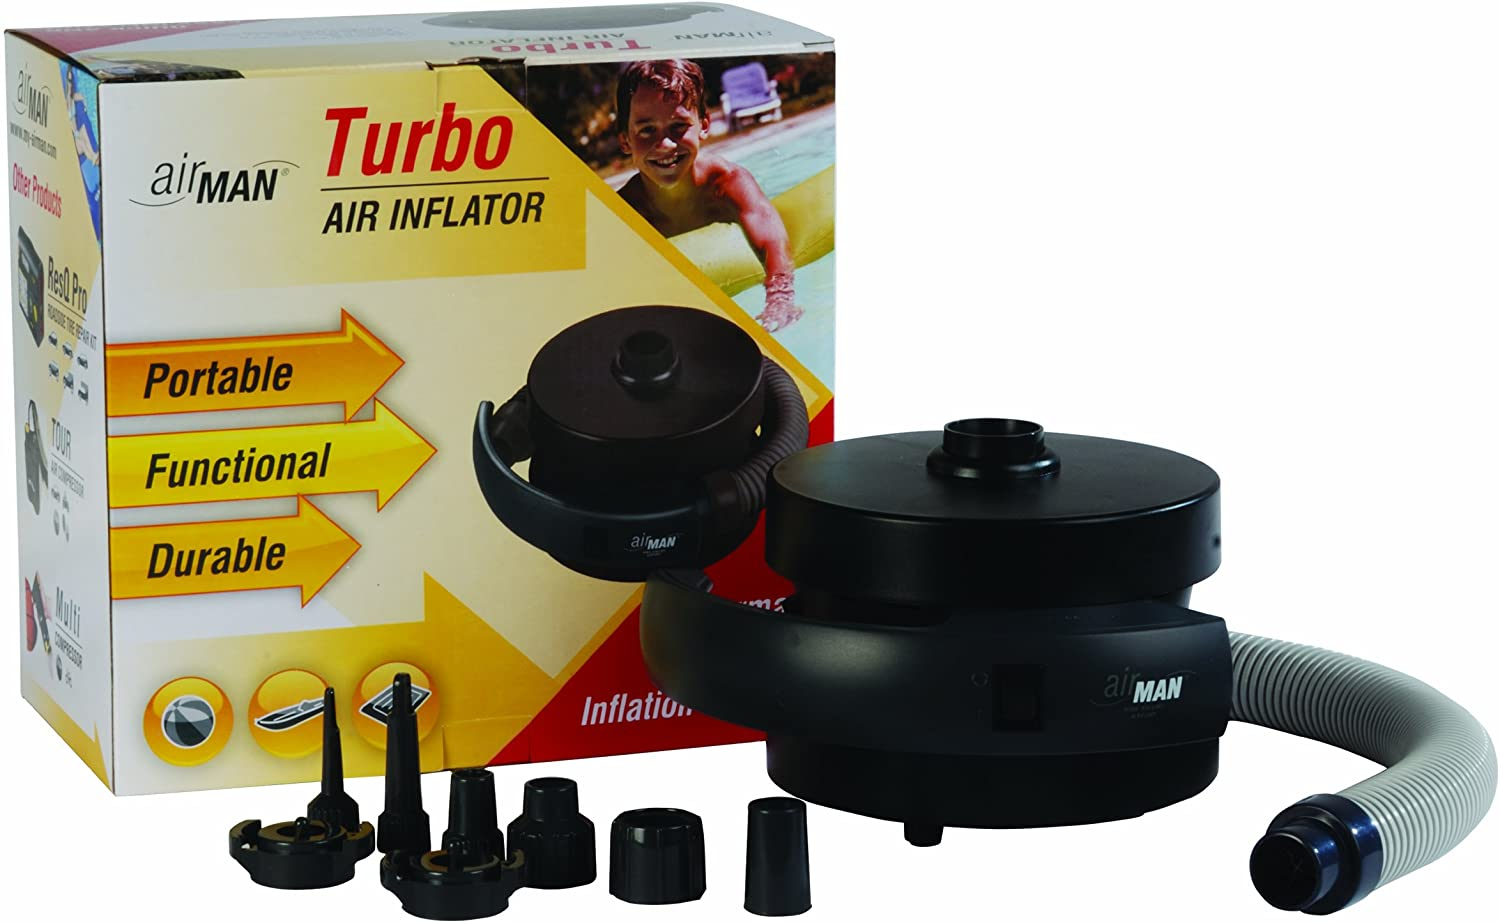 AirMan 54-020-021 Turbo Cordless Rechargeable High Volume and High Performance Air Inflator